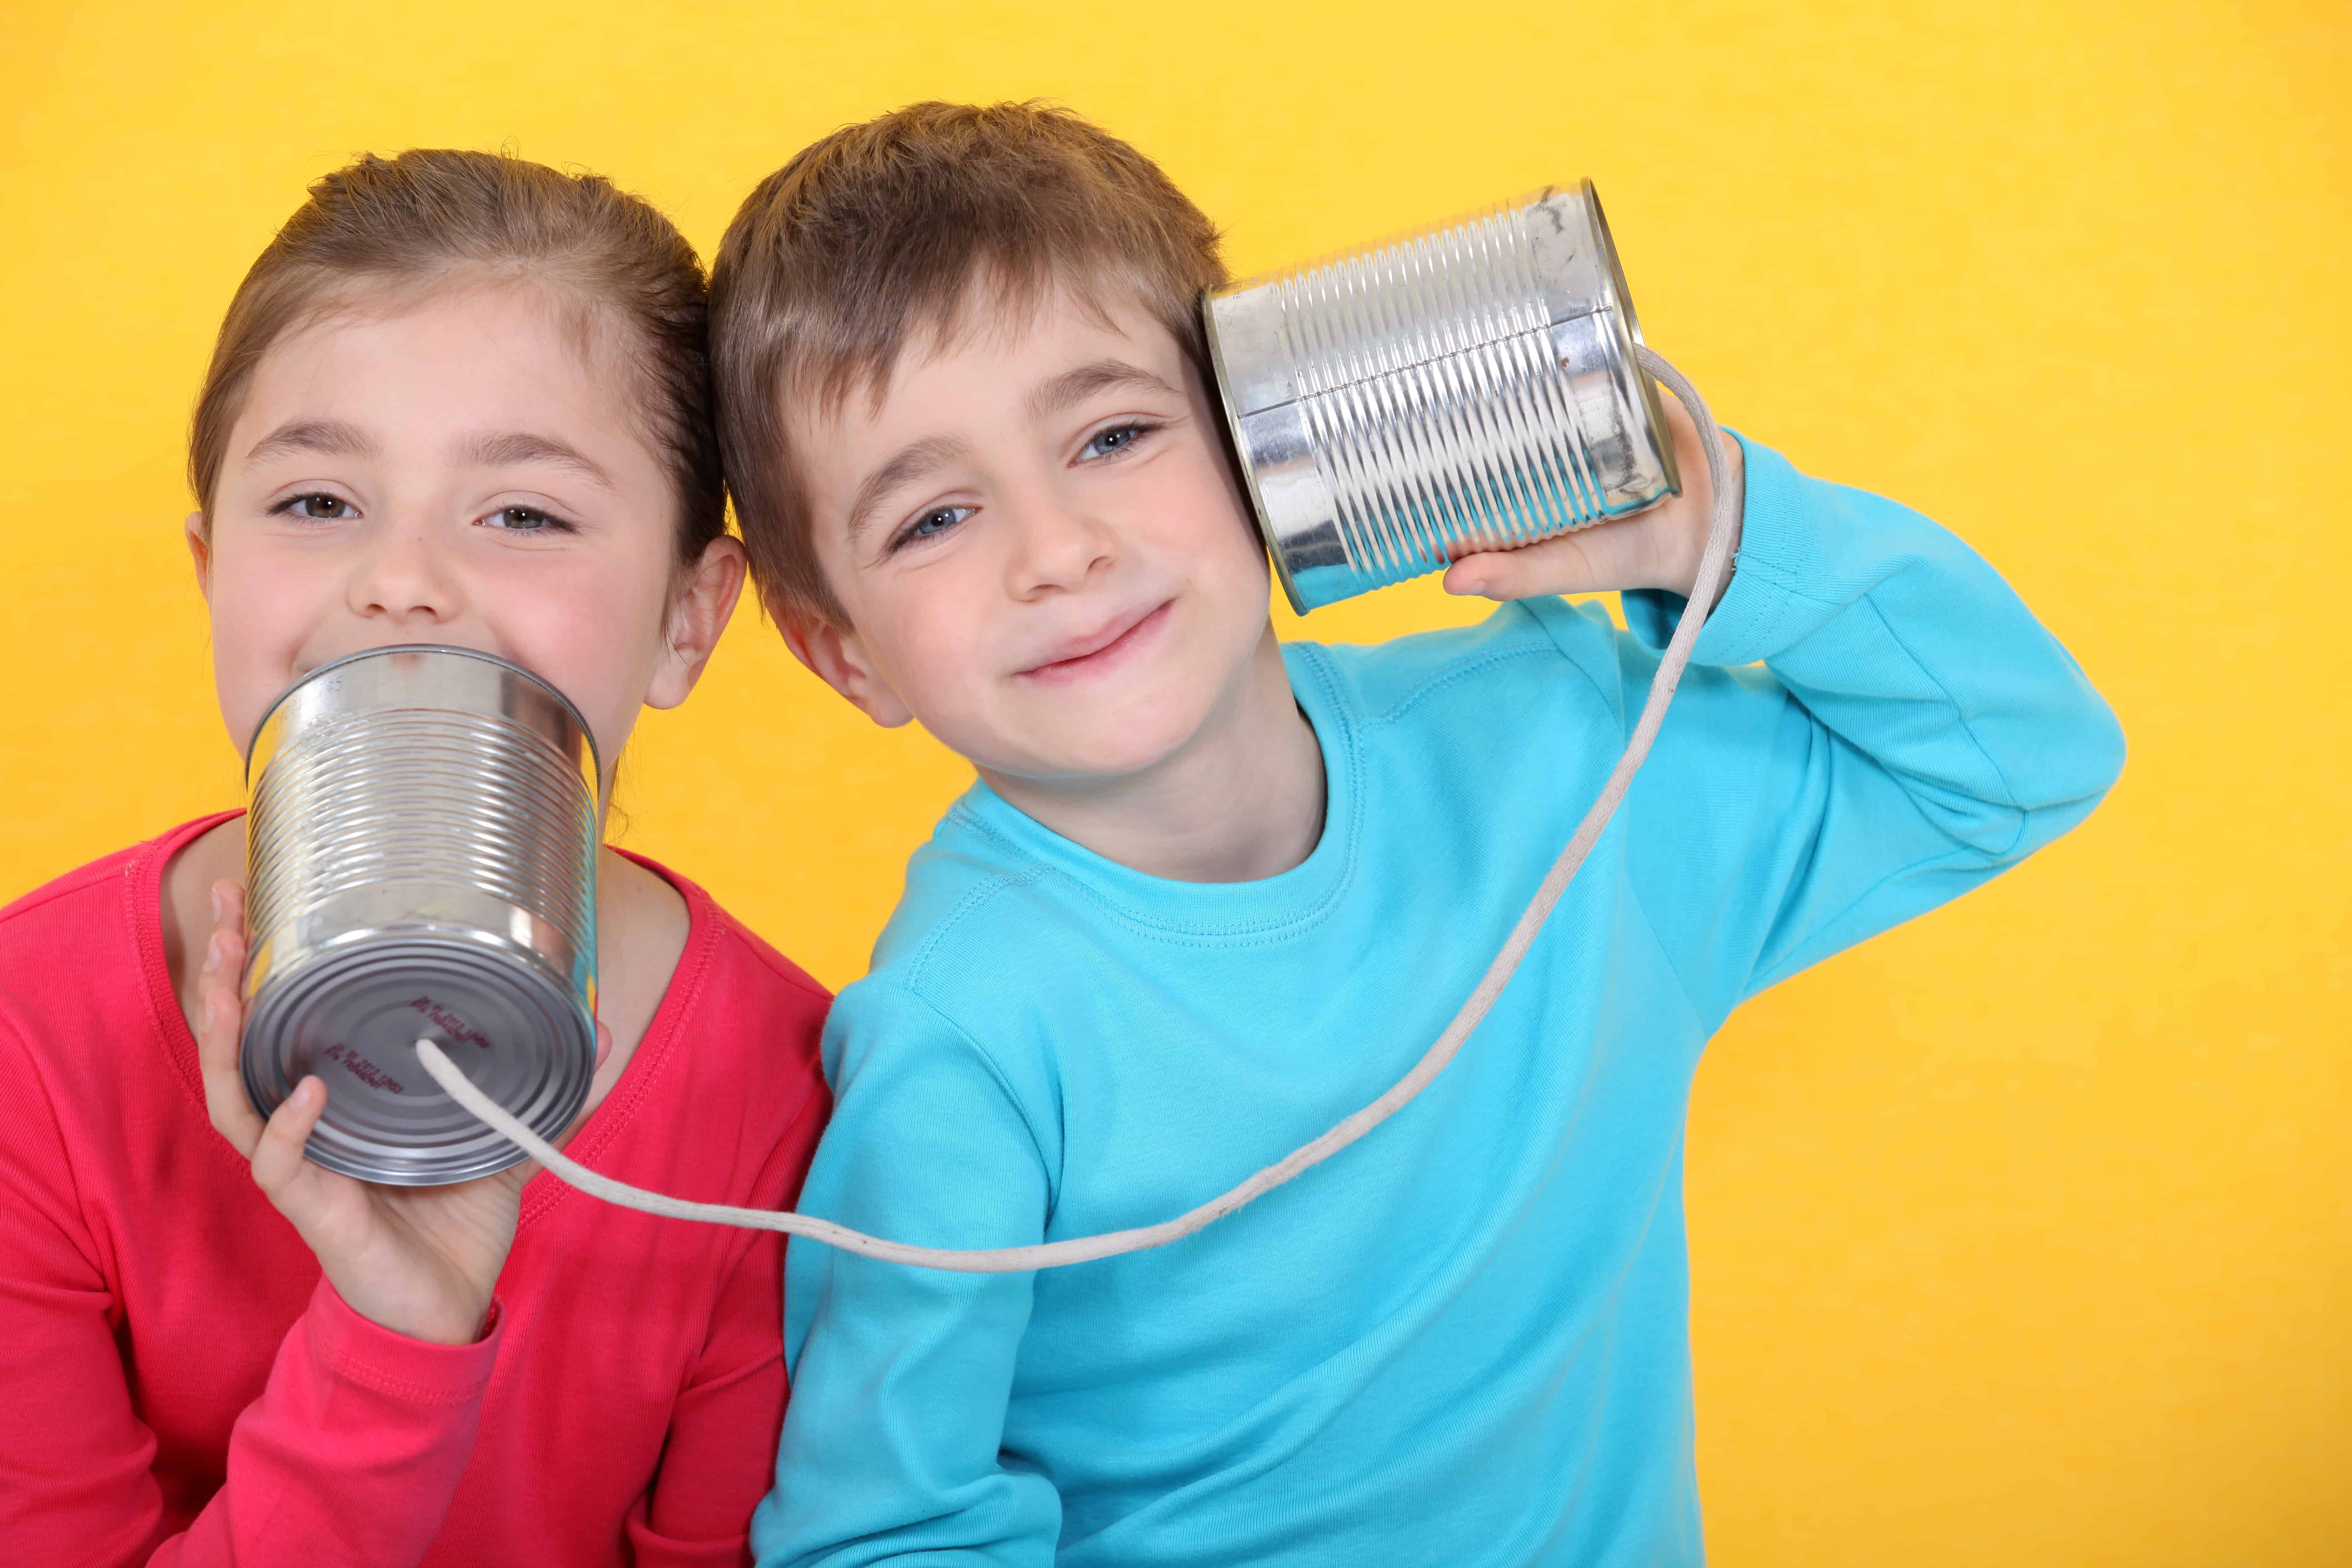 0c14da9e50 Kids having a phone call with tin cans on yellow background - Raise ...